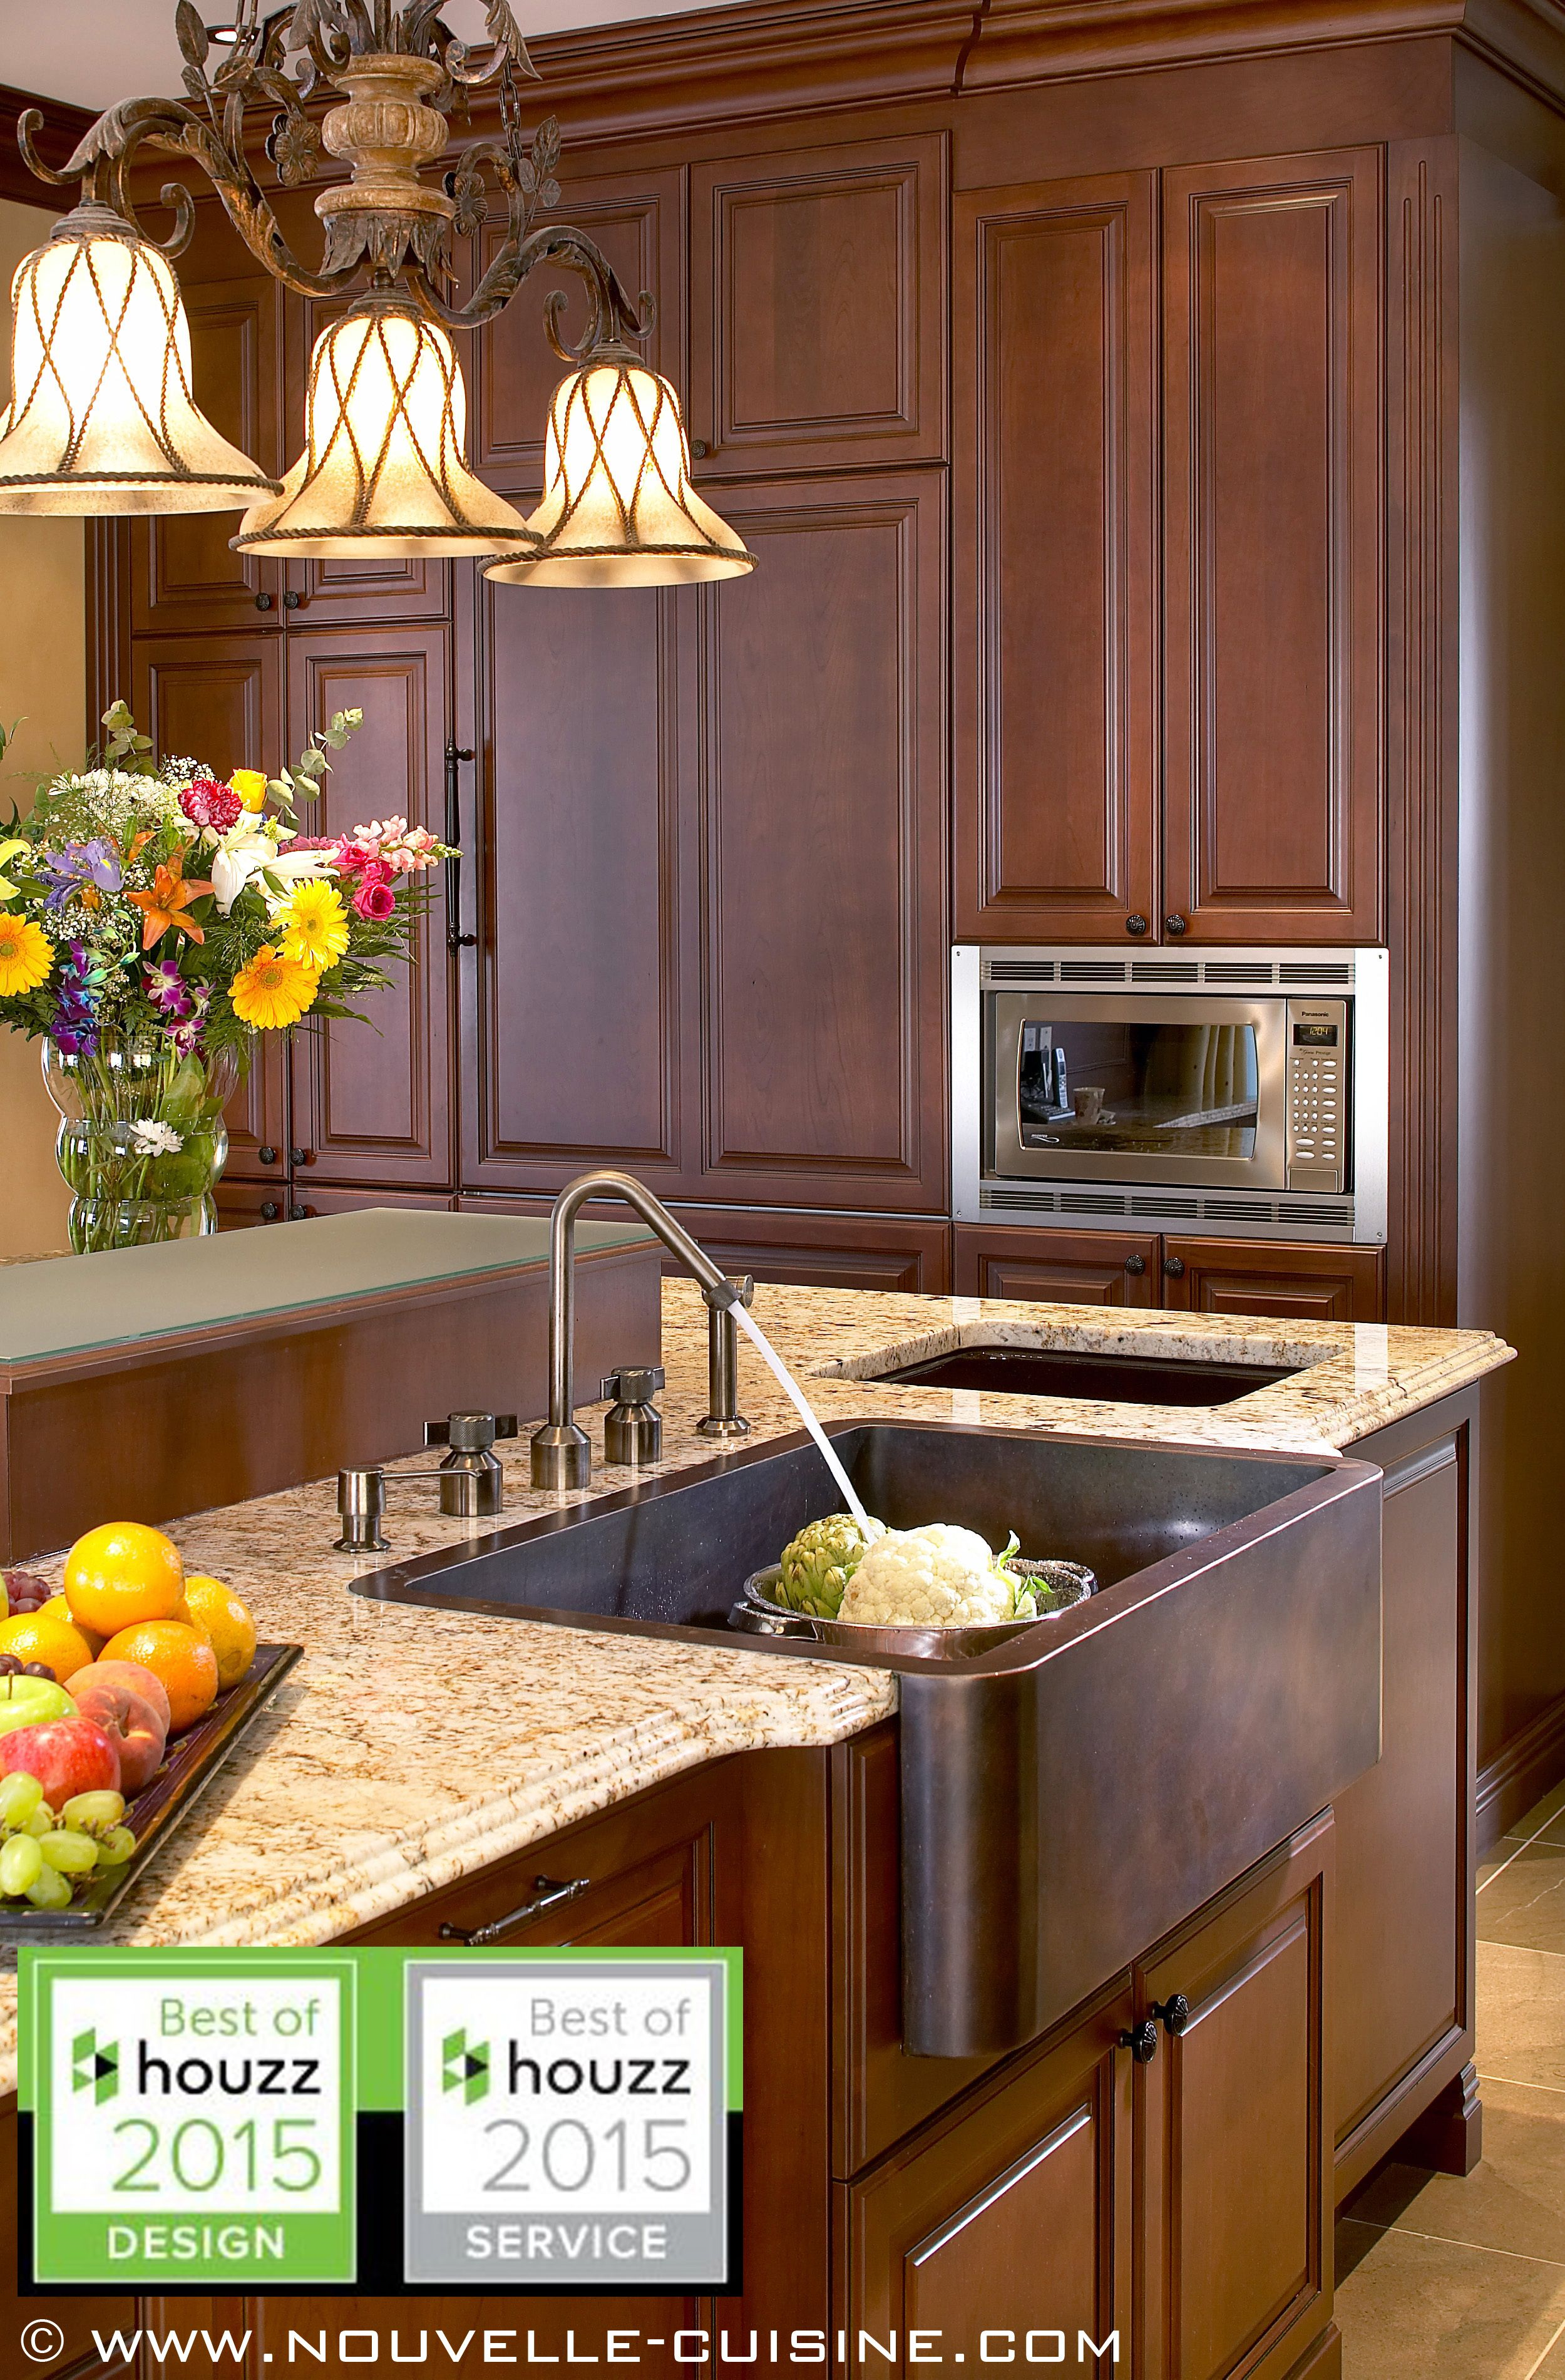 classic kitchen with wood cabinets and a granite countertop that extends onto the backsplash